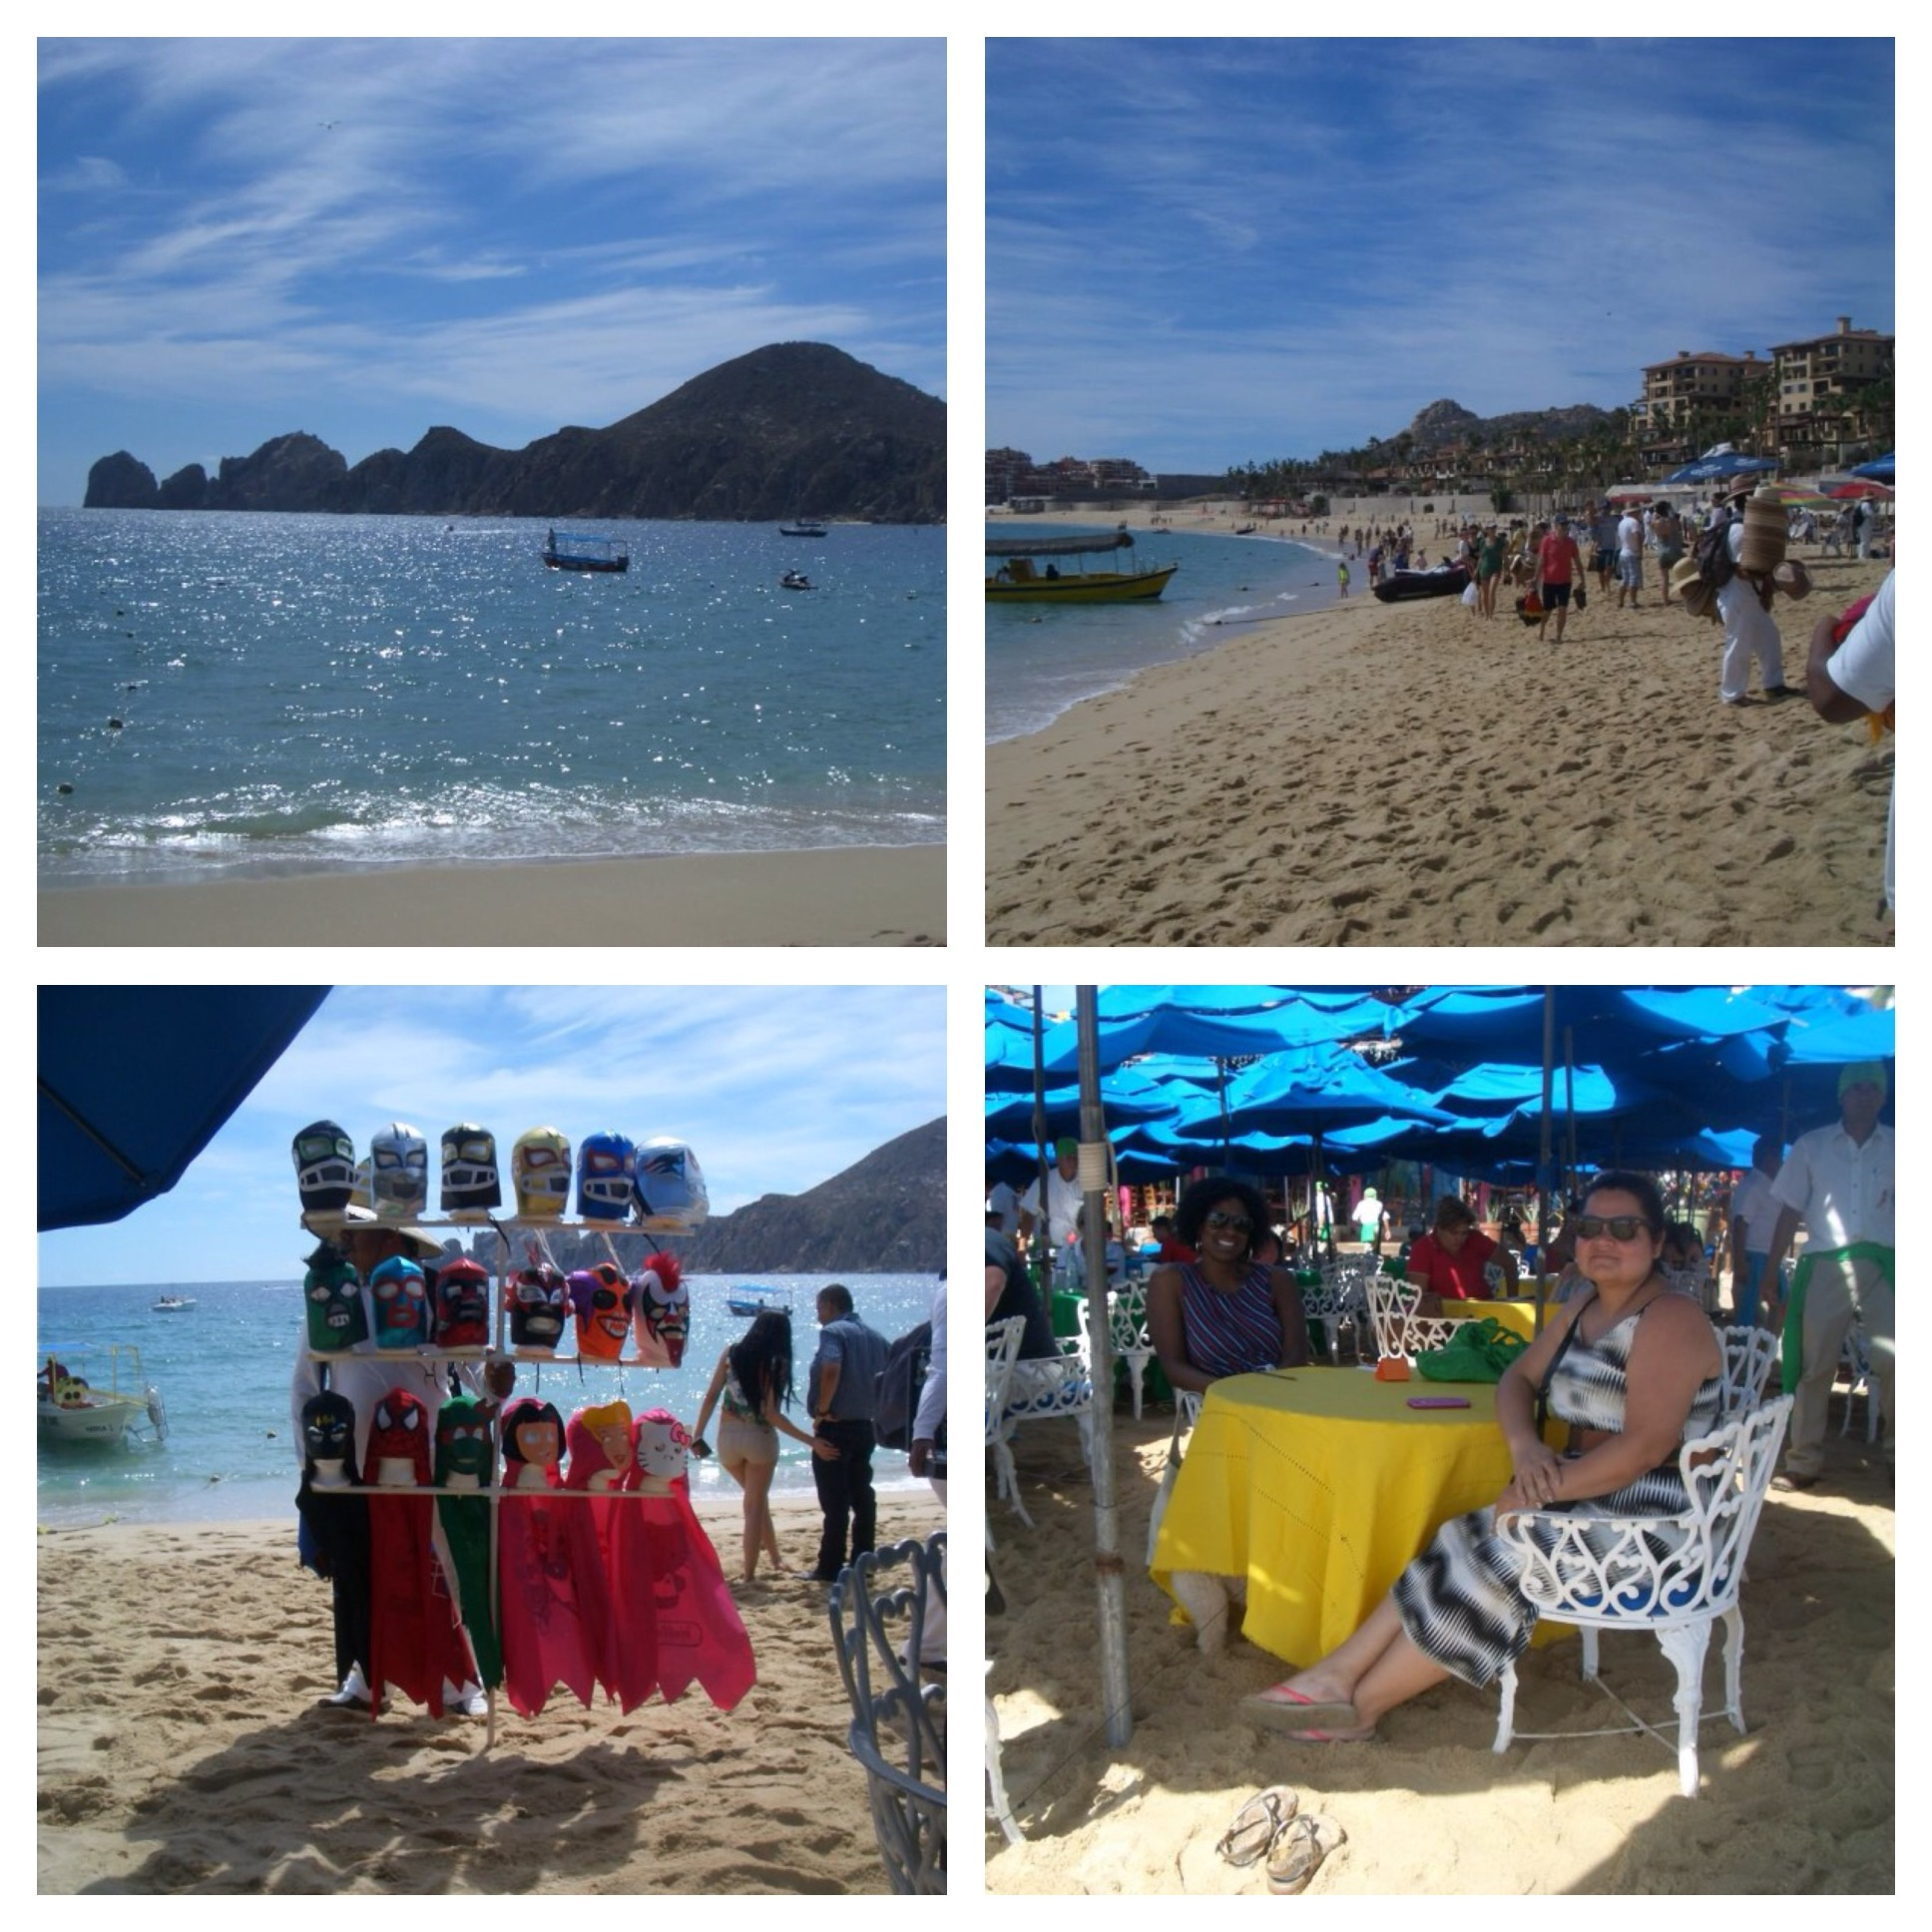 The neighboring party town of Cabo San Lucas popular with many tourists and students on spring break.